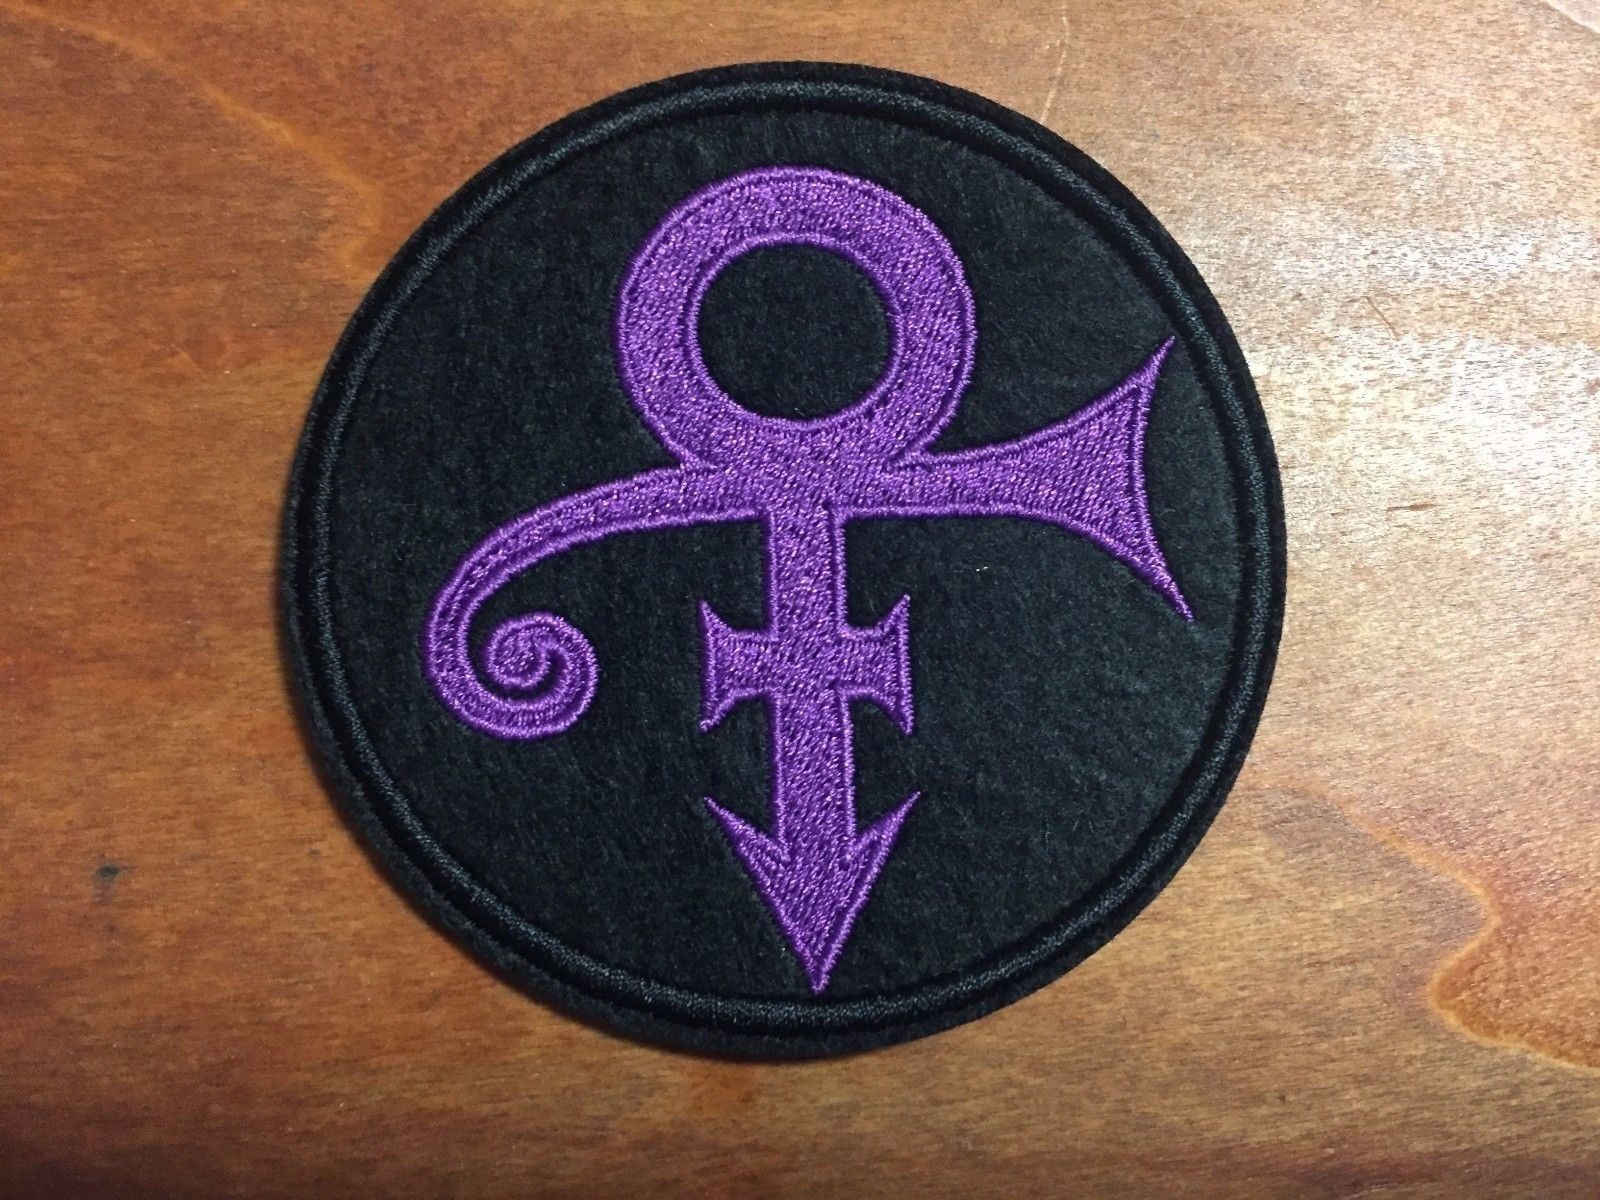 Prince The Artist Love Symbol Purple Logo Patch Embroidered Iron